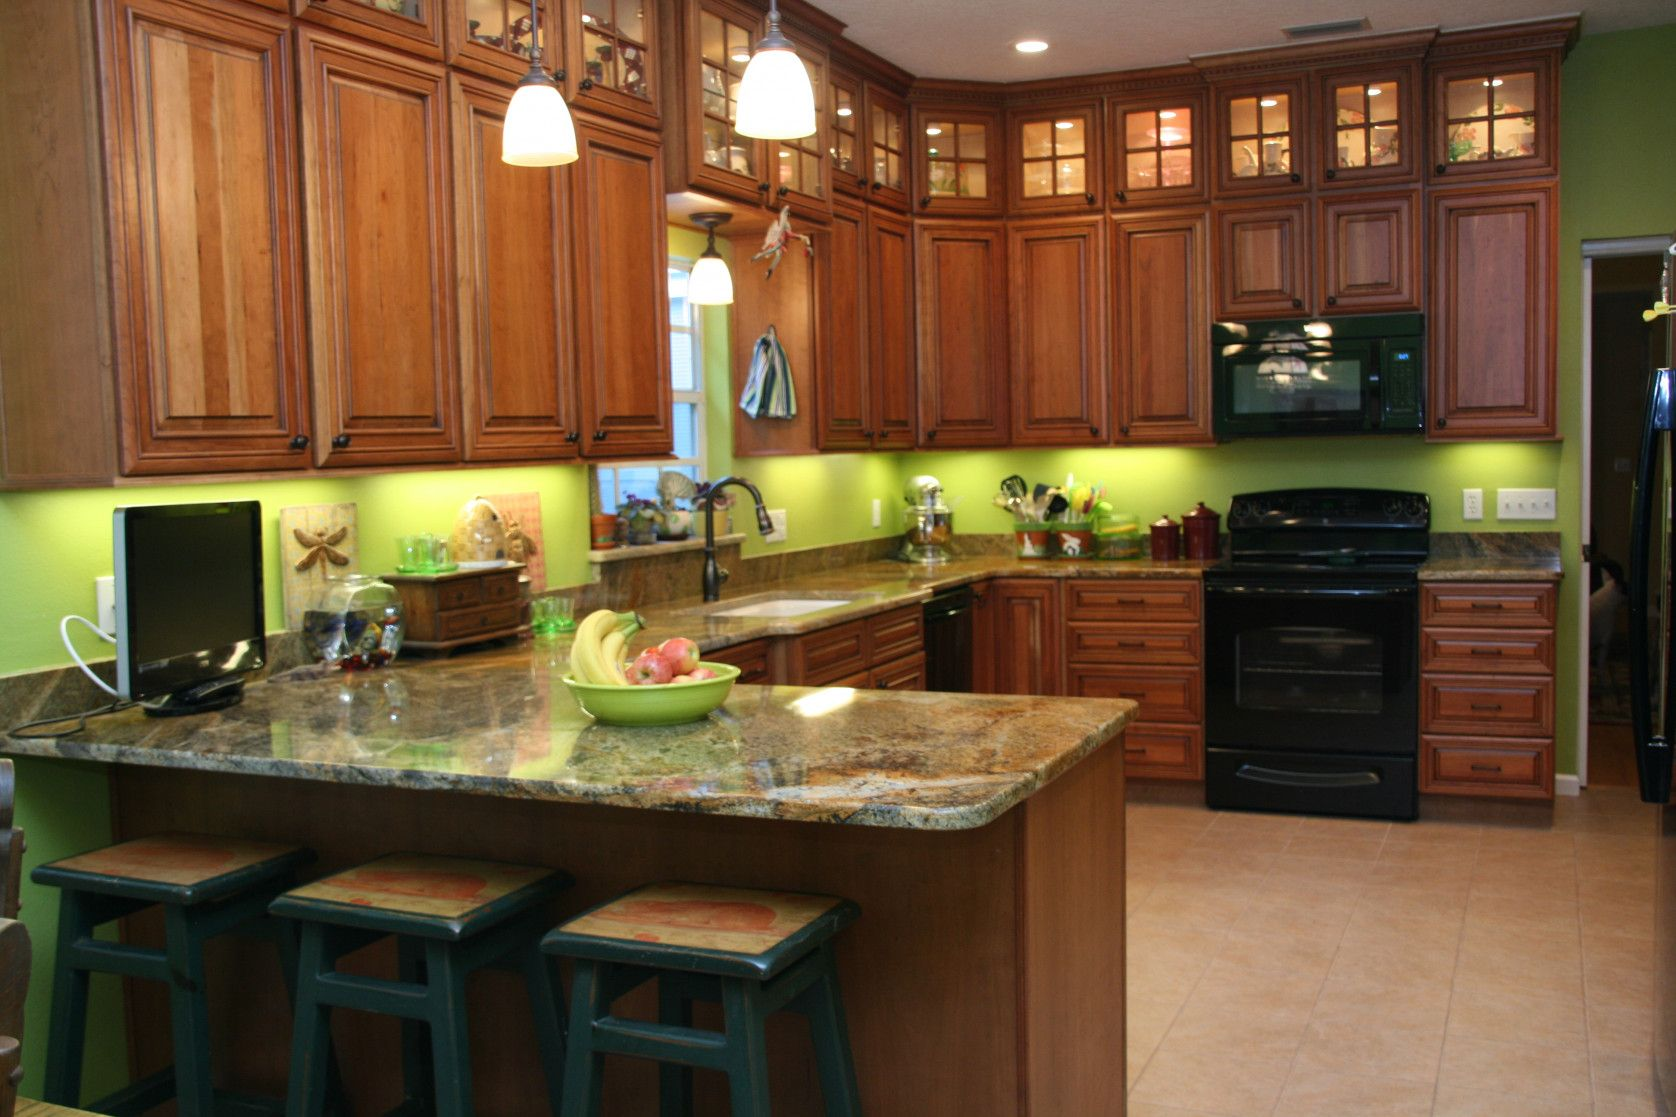 77 buy kitchen cabinet online kitchen cabinets update ideas on a budget check more